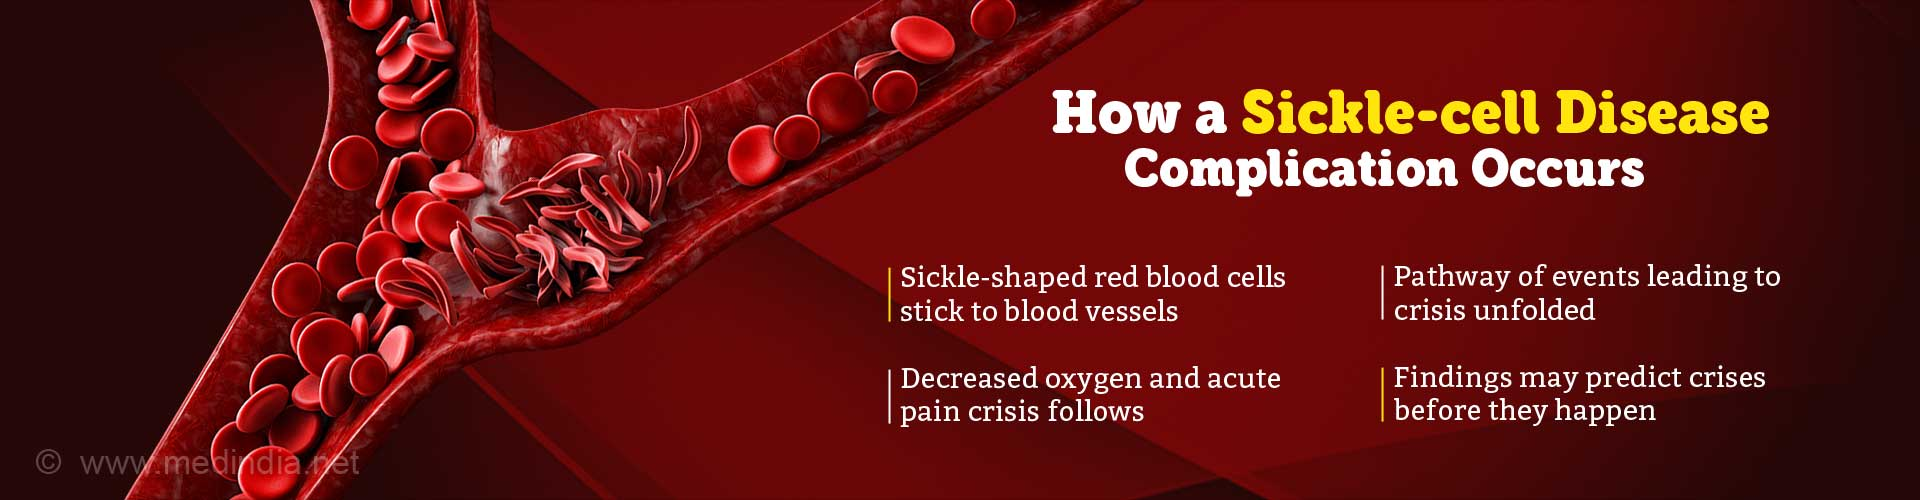 How Does Acute Pain Crisis in Sickle Cell Disease Arise?